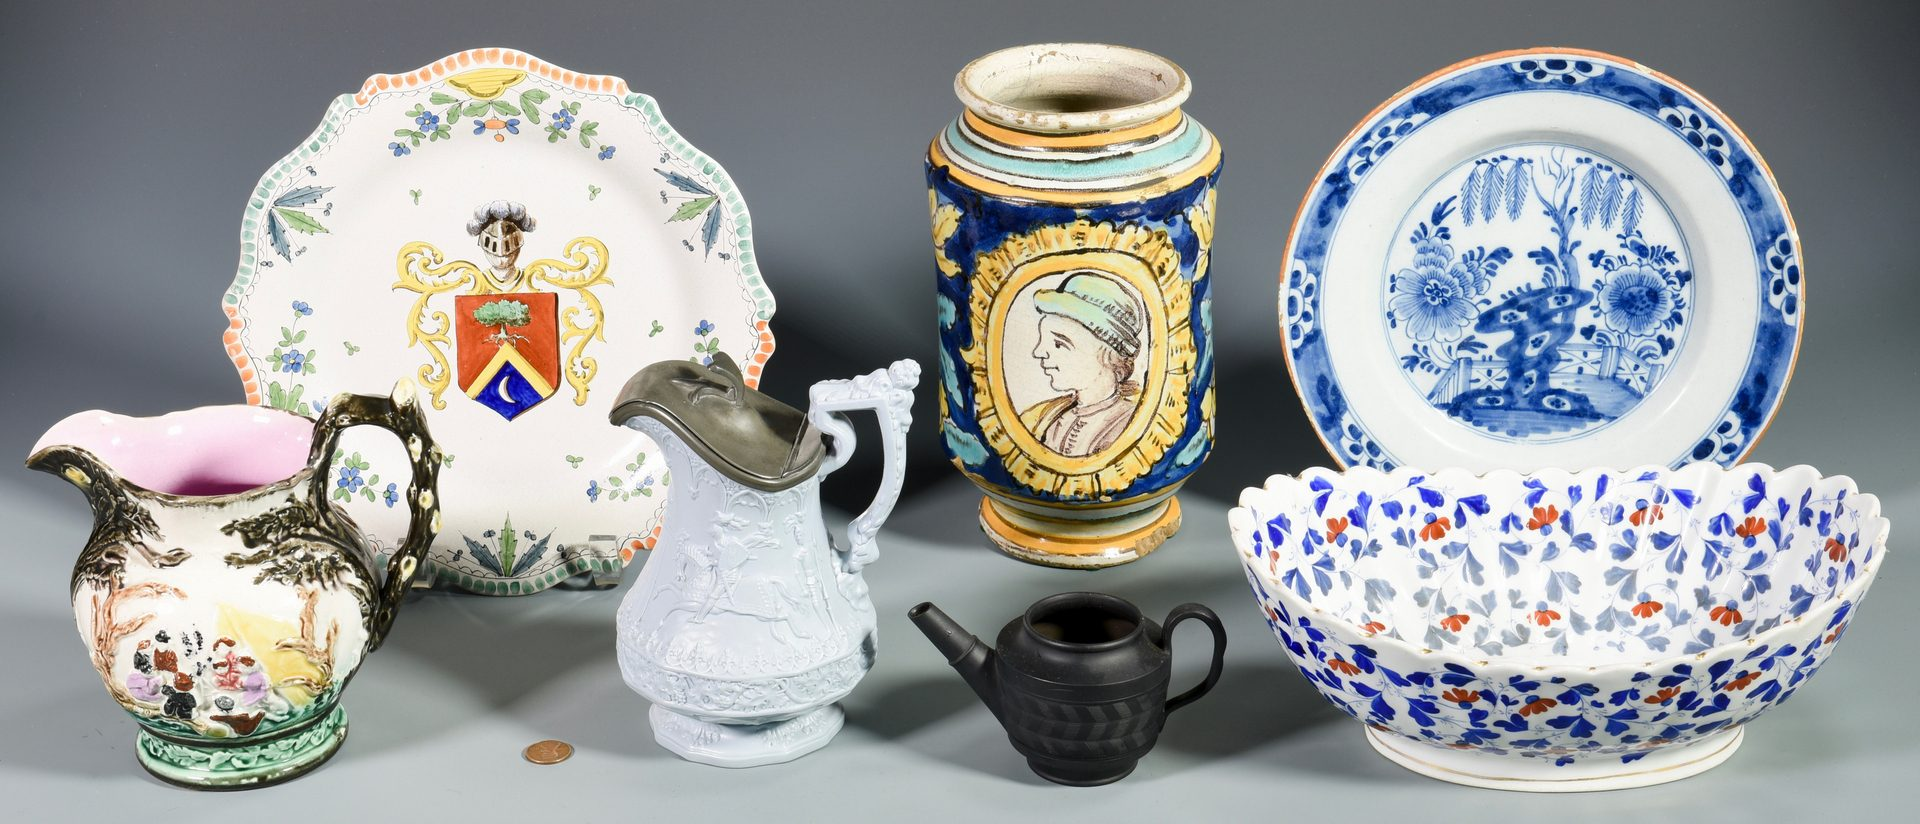 Lot 82: 7 Pieces of English & European Porcelain